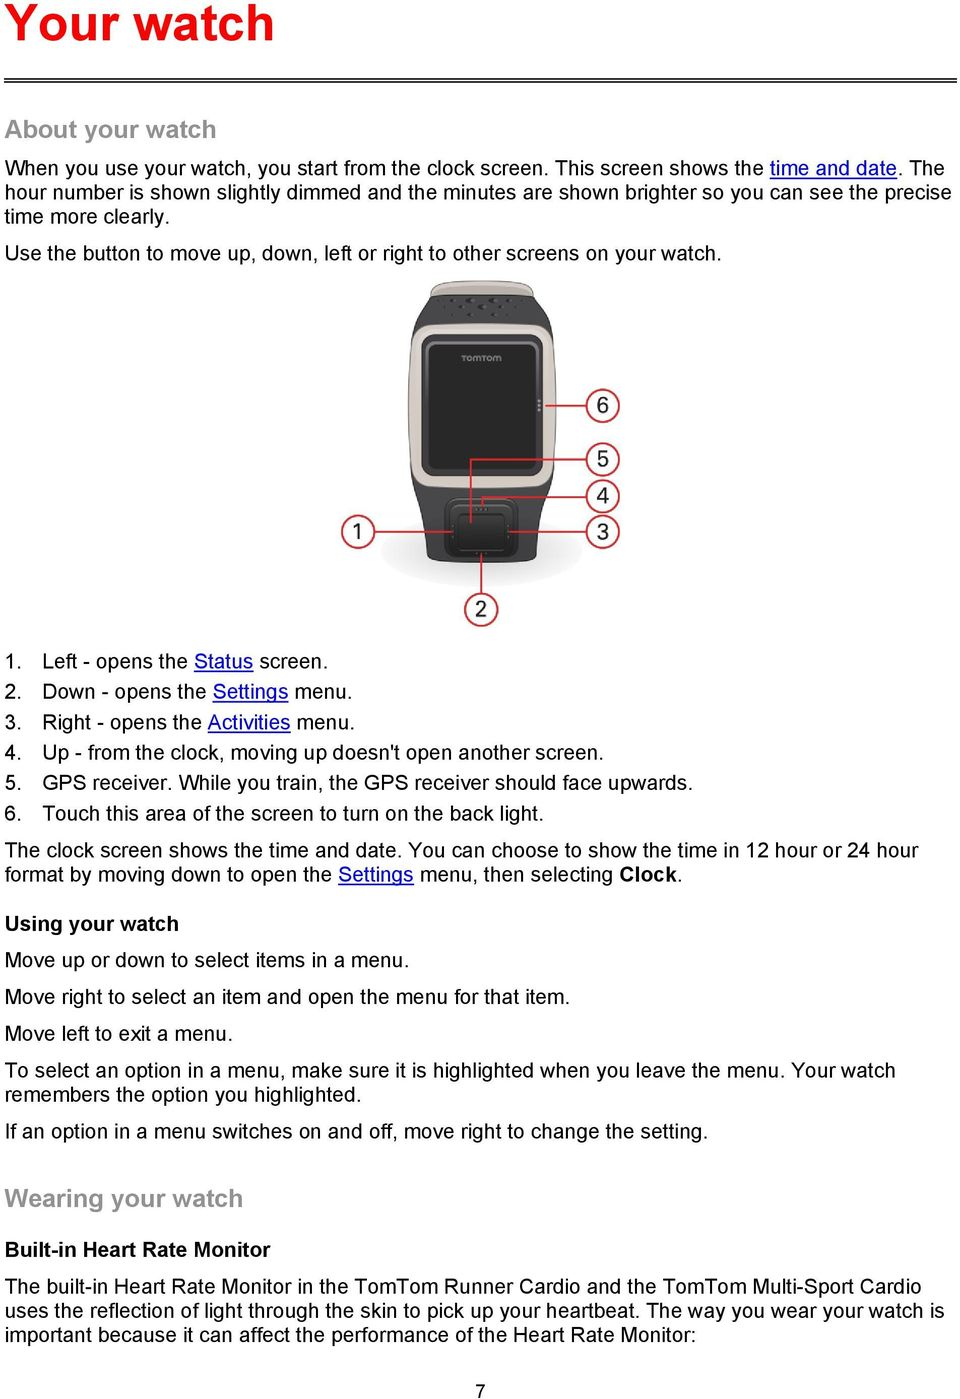 Tomtom Runner Multi Sport Reference Guide Pdf Gps Tracker Wiring Diagram 1 Left Opens The Status Screen 2 Down Settings